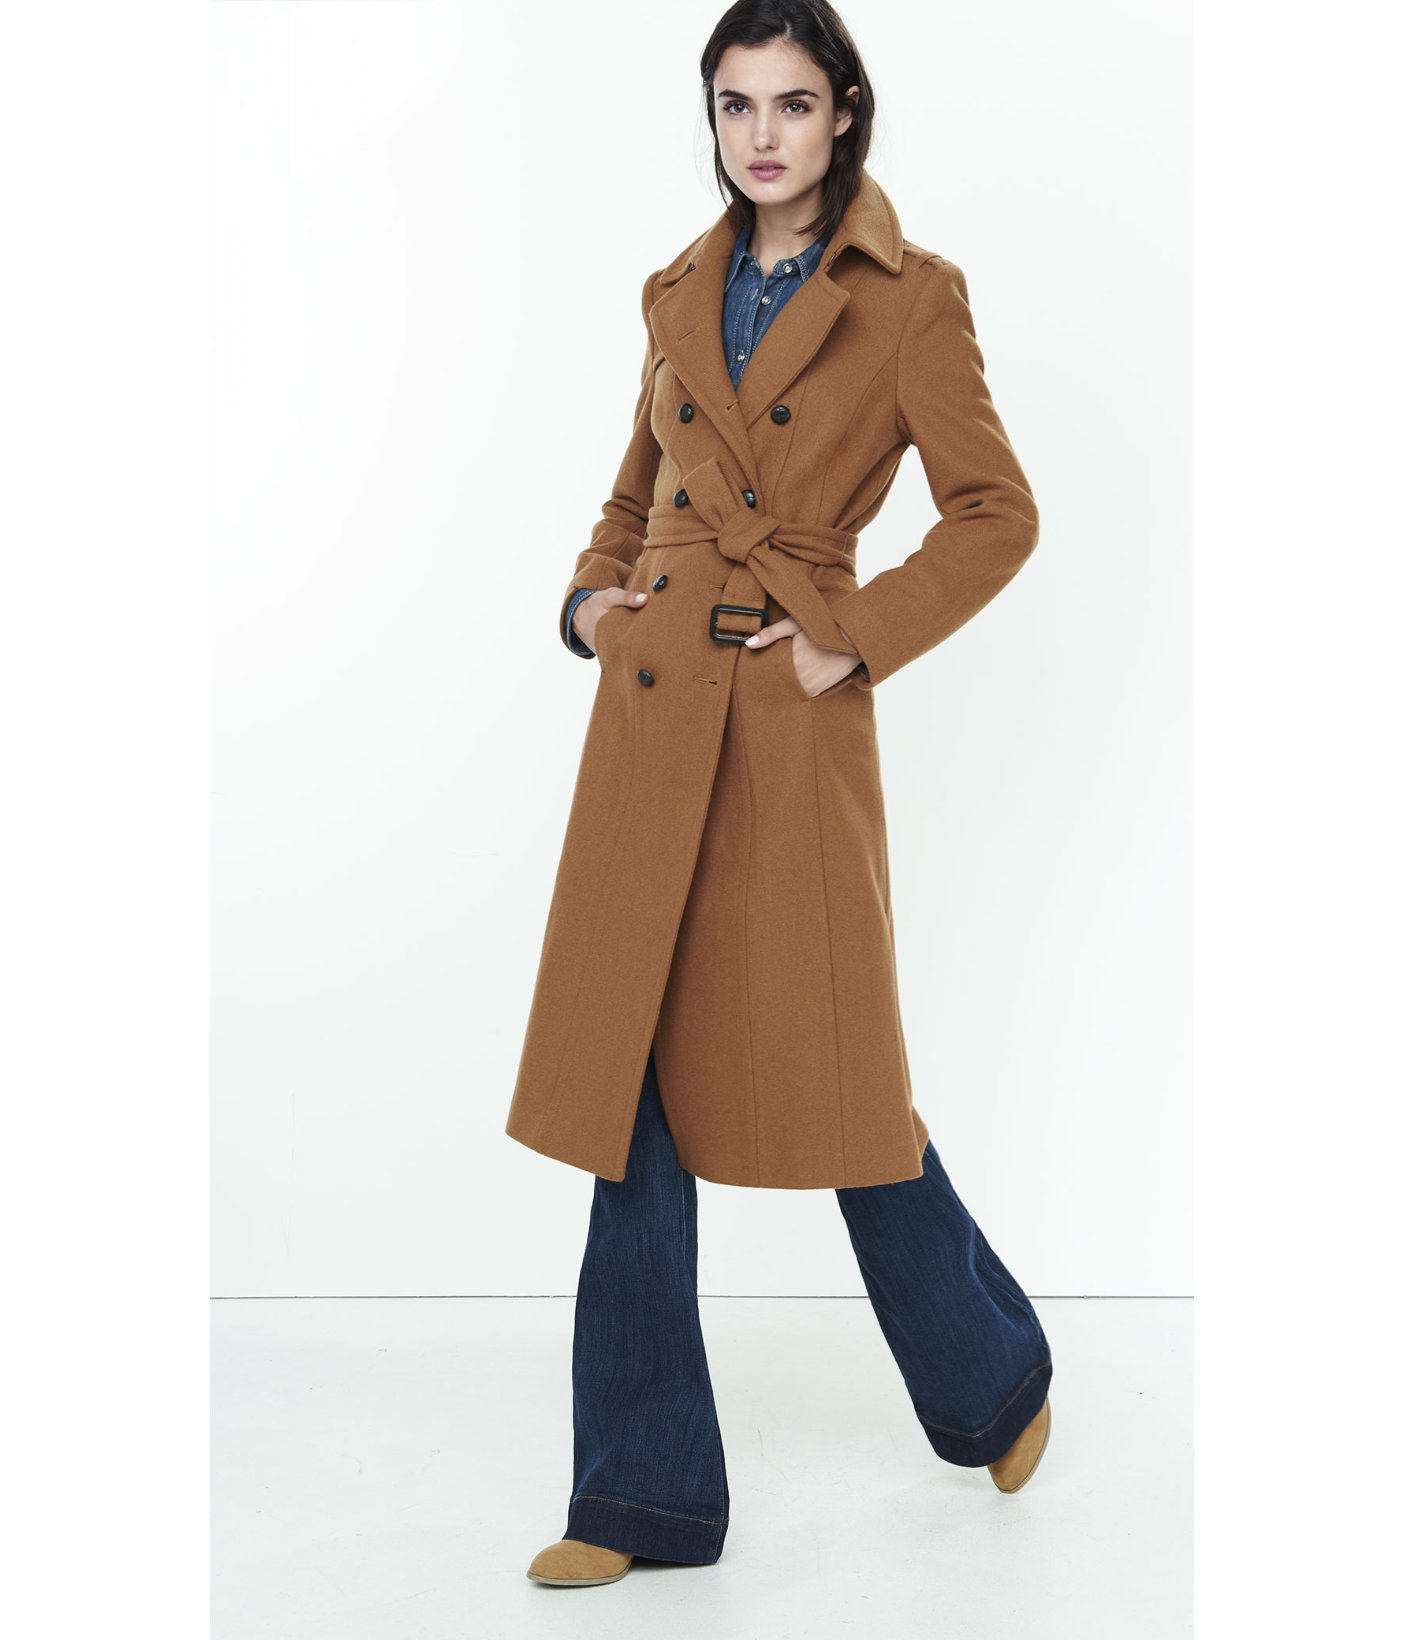 The Wool Trench Coat - Tradingbasis